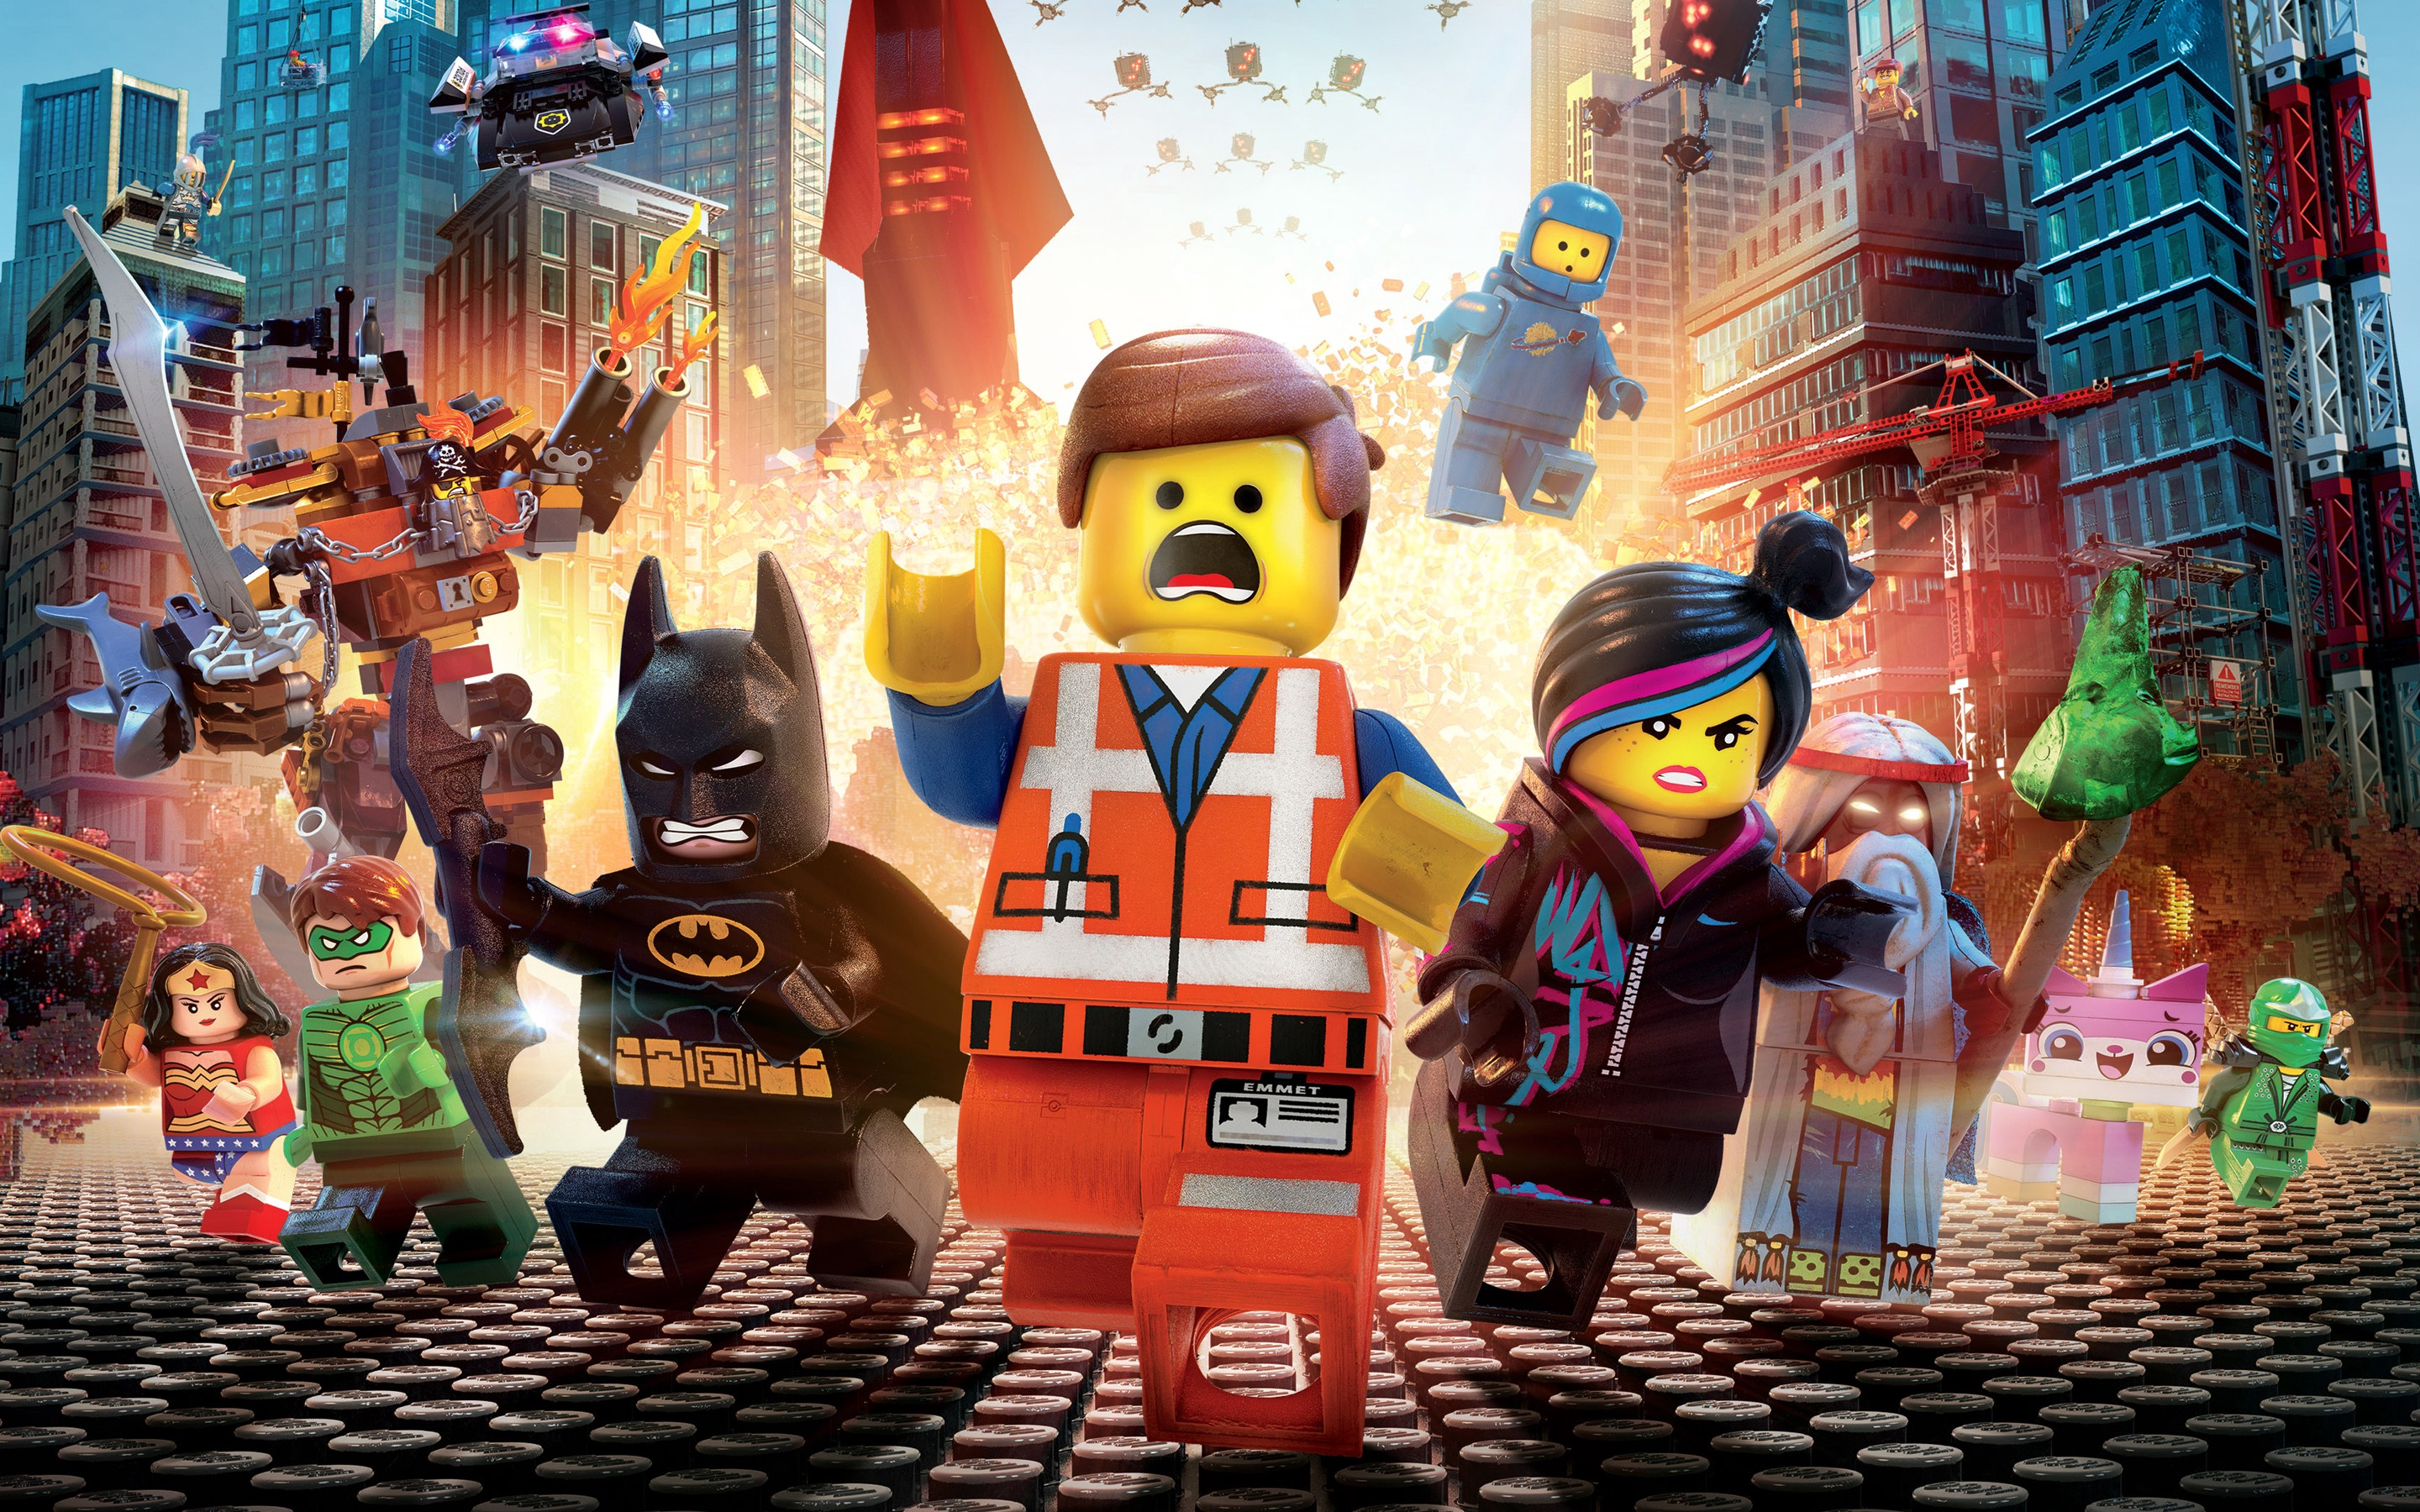 5 Reasons The Lego Movie Is The Greatest Branded Content Ever By Mission Mission Org Medium